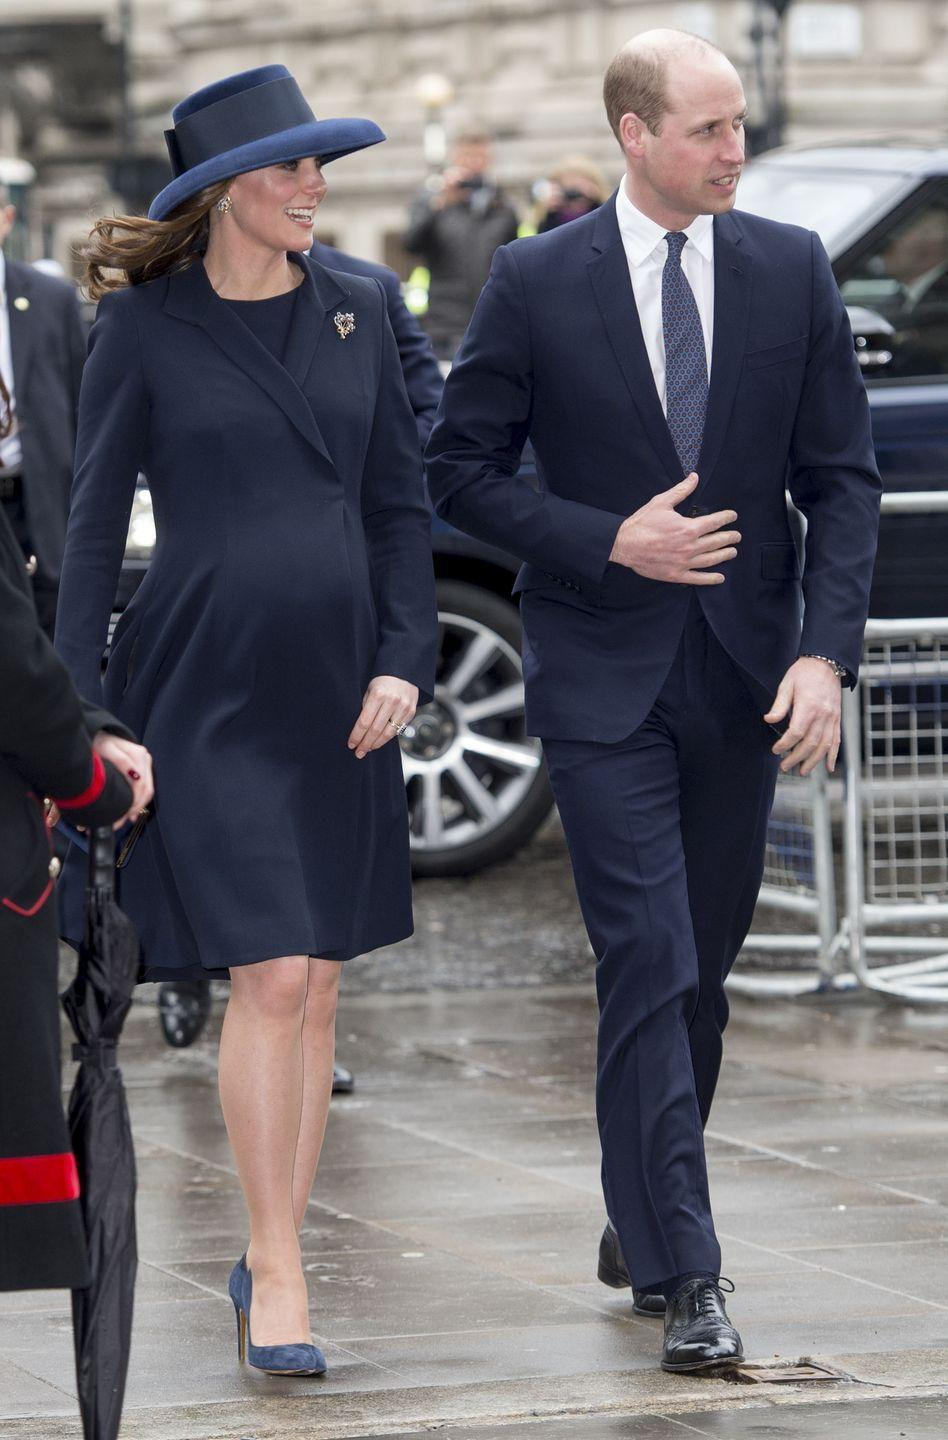 """<p>For the Commonwealth Day service, Duchess Kate chose a dark blue Beulah London dress and coat set paired with a Lock and Co hat. She and her soon-to-be sister-in-law Meghan Markle were both sporting <a href=""""https://www.townandcountrymag.com/society/tradition/a19407133/meghan-markle-outfit-commonwealth-day/"""" rel=""""nofollow noopener"""" target=""""_blank"""" data-ylk=""""slk:navy pointy-toe pumps"""" class=""""link rapid-noclick-resp"""">navy pointy-toe pumps</a> for the occasion. </p>"""